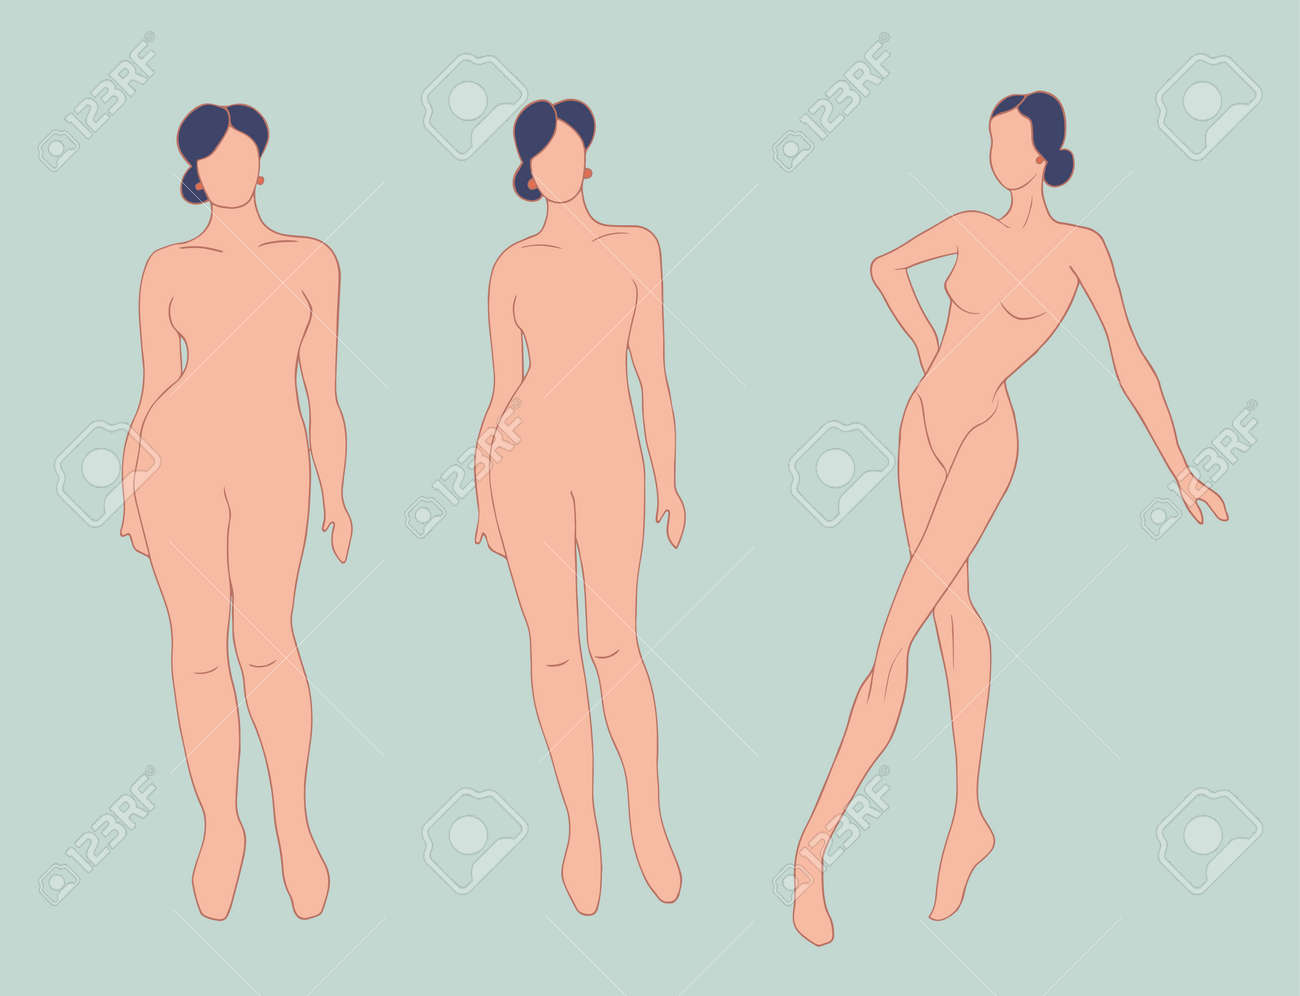 Concept of overweight and diet. Before and after. Silhouette sequence of woman. Progress in weight loss. From fat people to slim and fit people. Fitness for weight loss. Health - 168103210